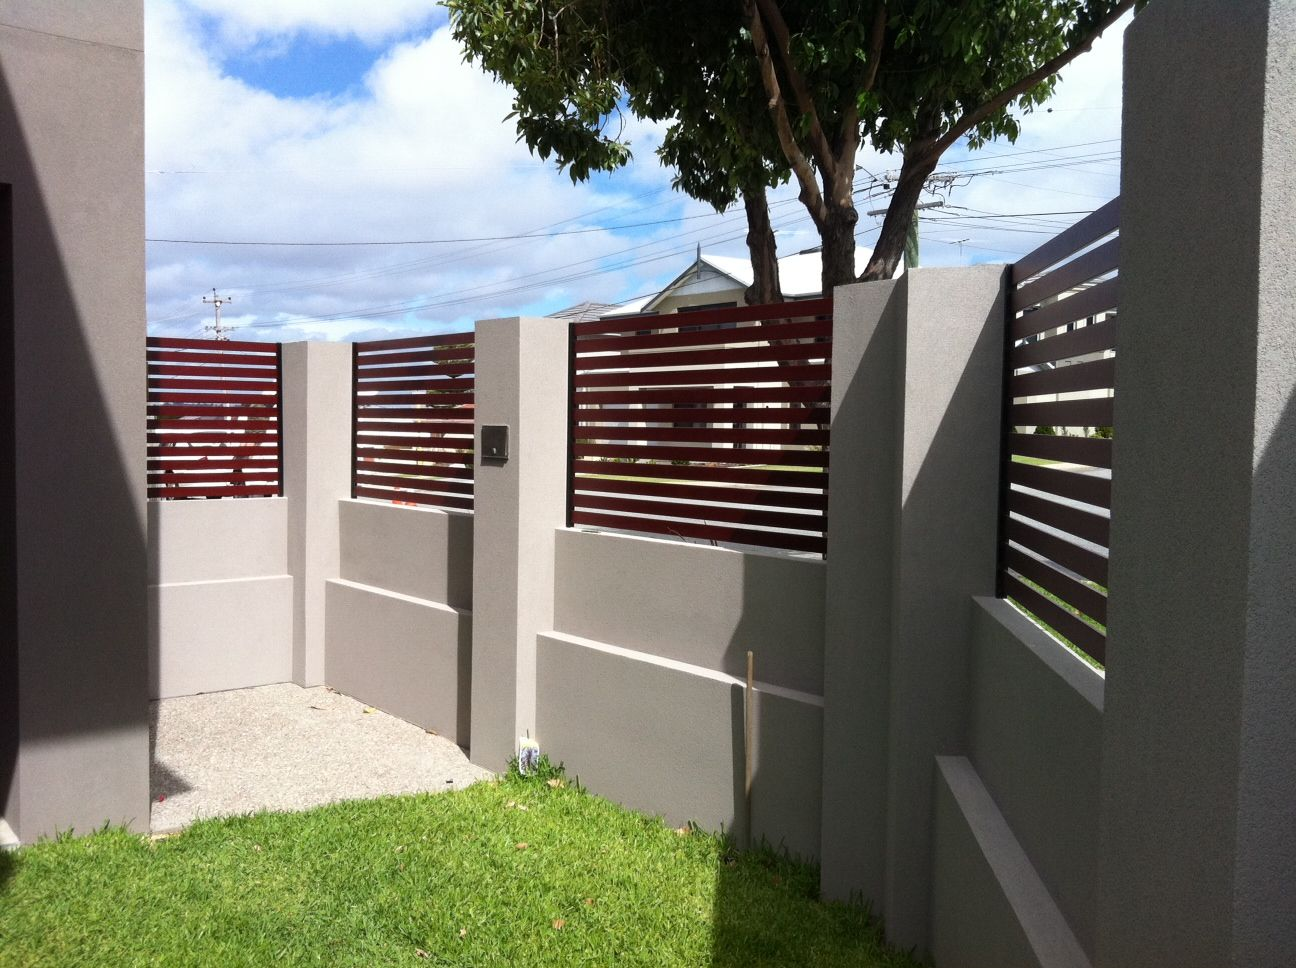 1000 images about fence on pinterest fence design fence ideas and concrete wood